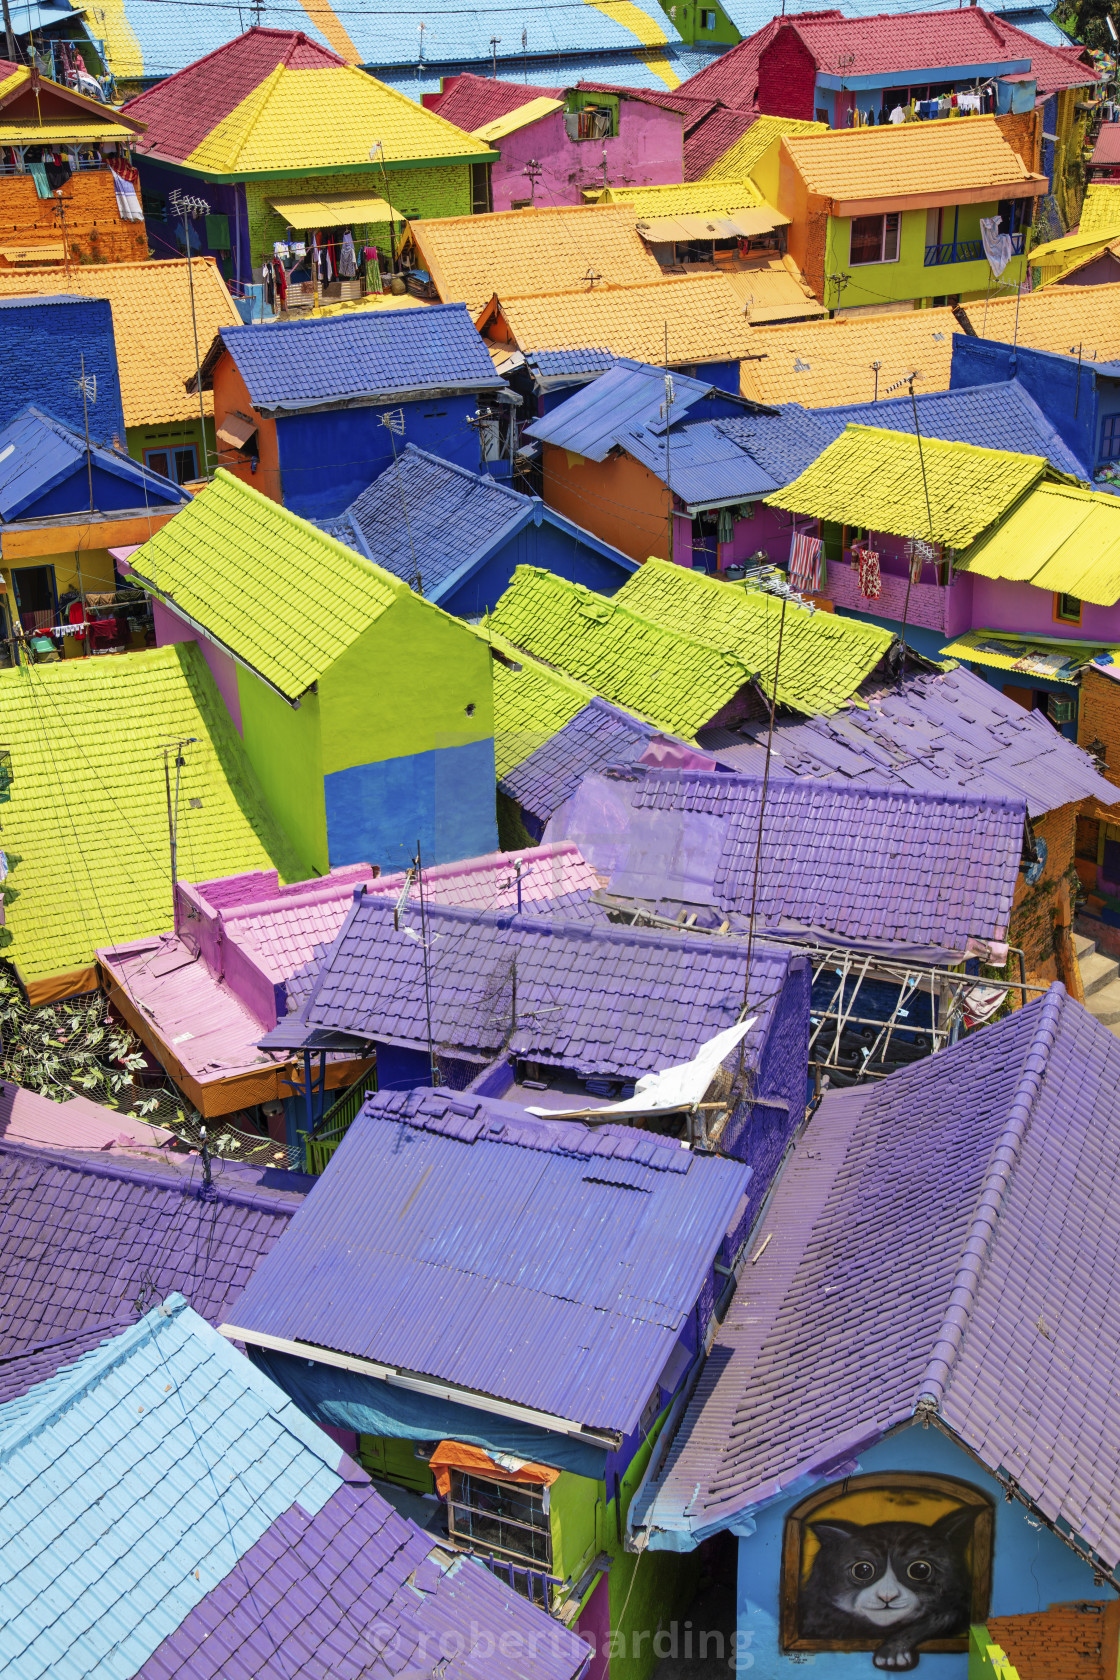 Indonesia Java Malang The Brightly Painted Warna Warni Kampong Or Shanty License Download Or Print For 79 84 Photos Picfair